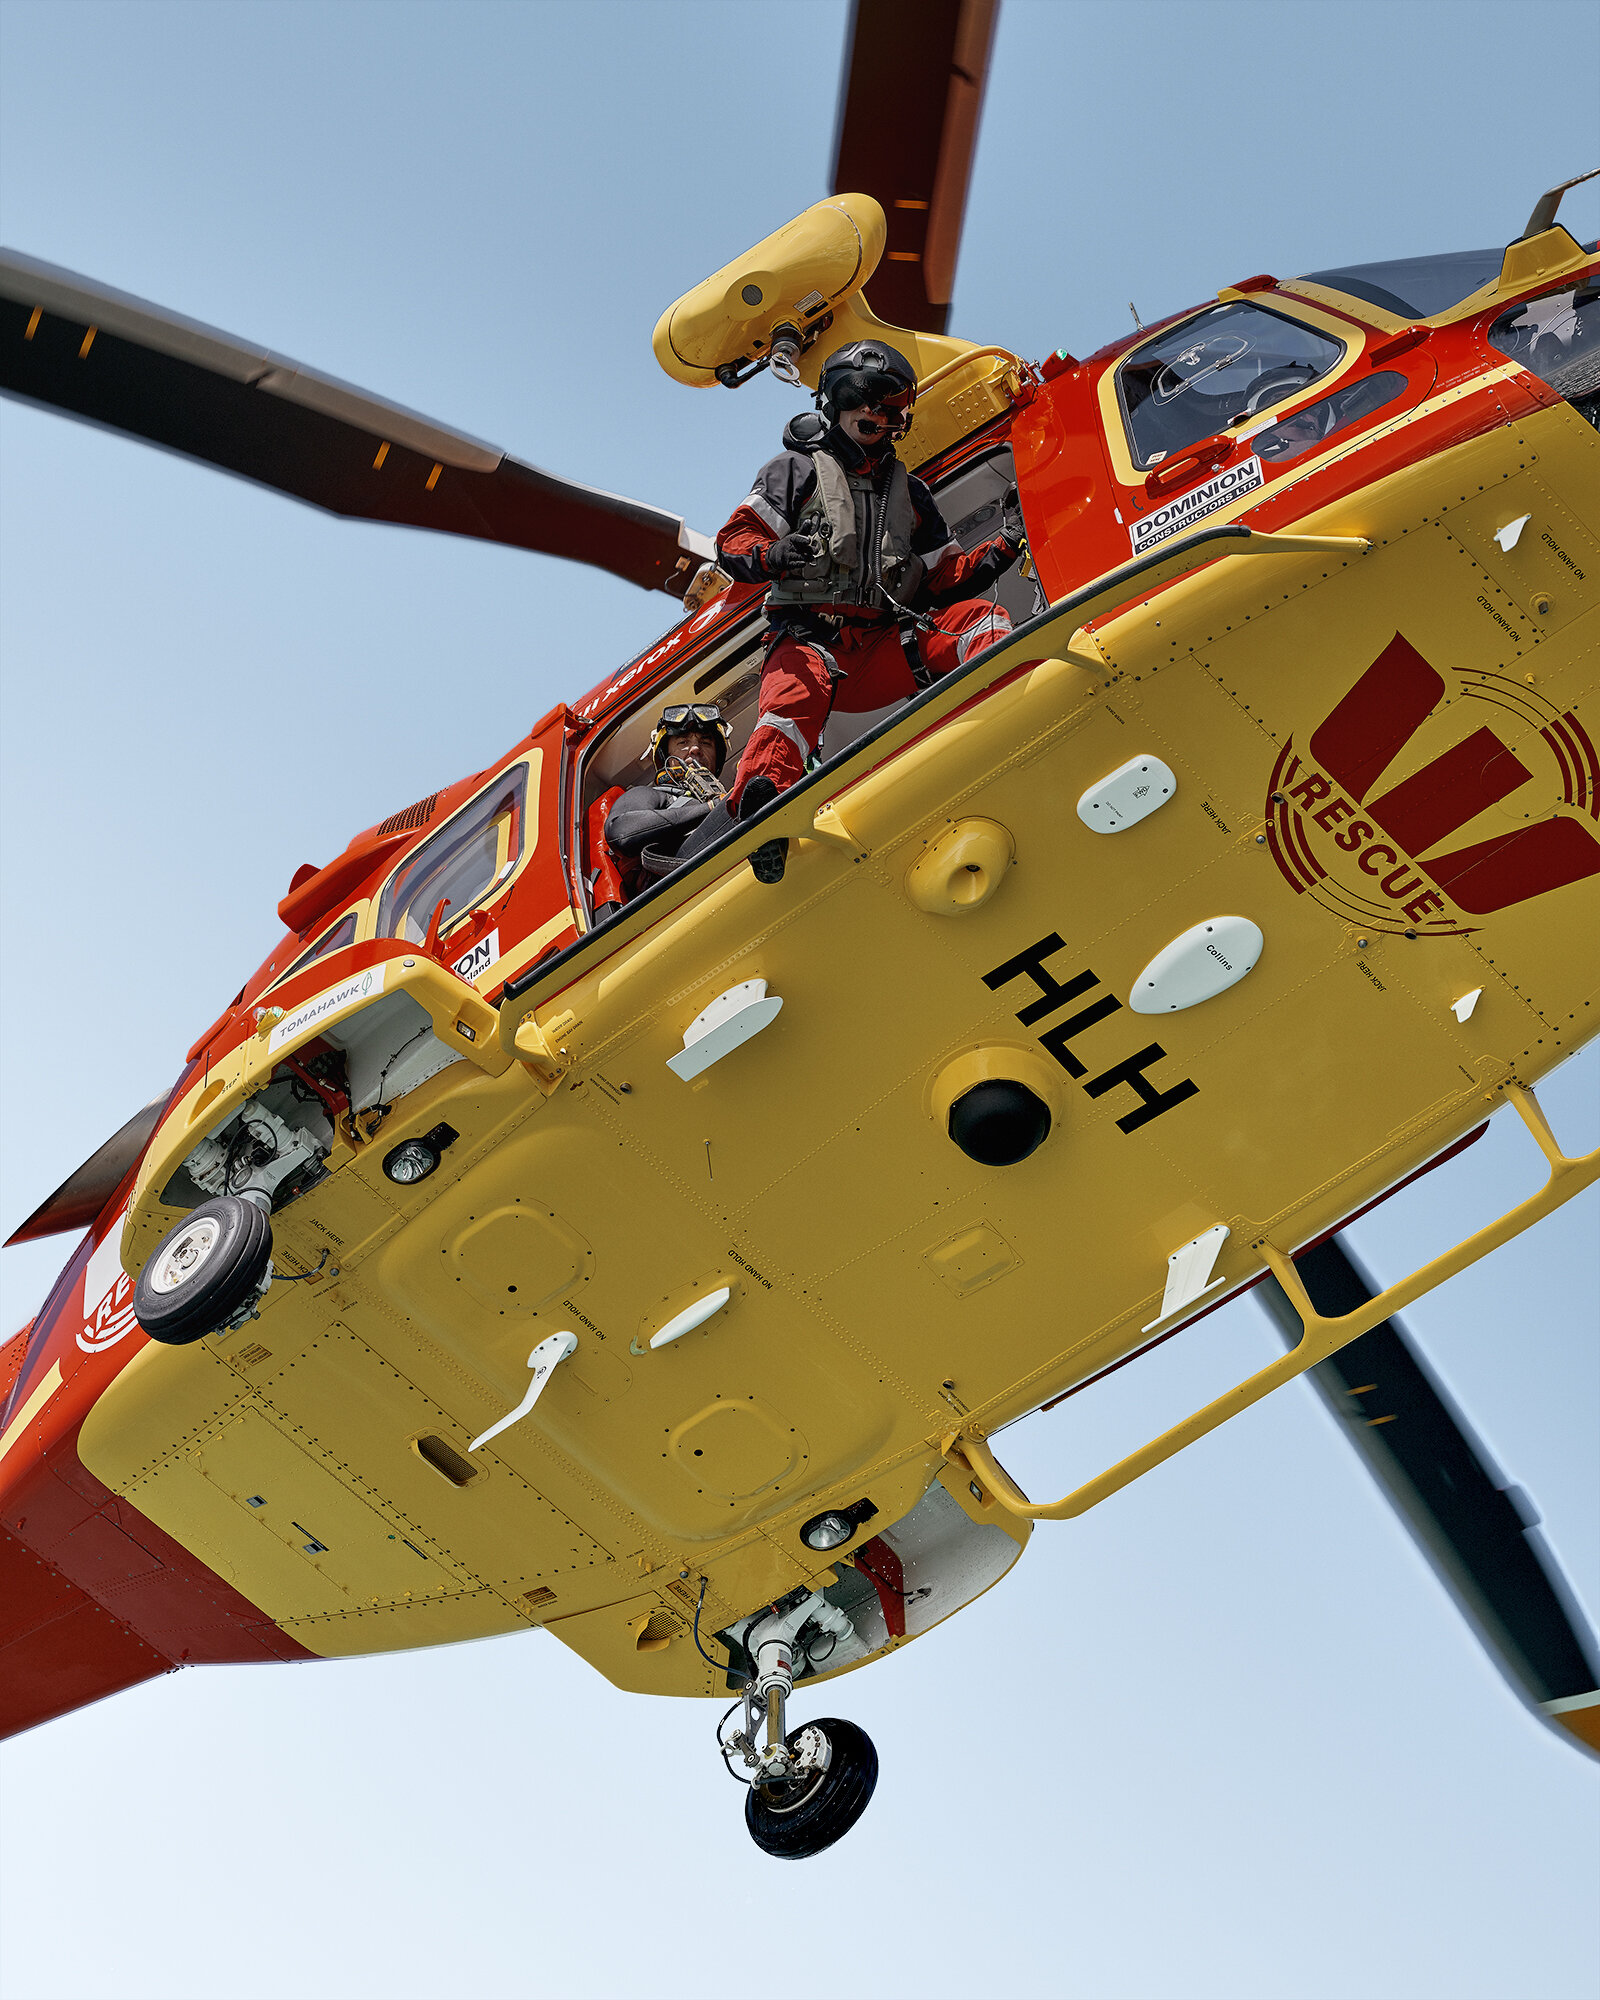 Westpac Rescue Helicopter - Auckland - Series of 13 images